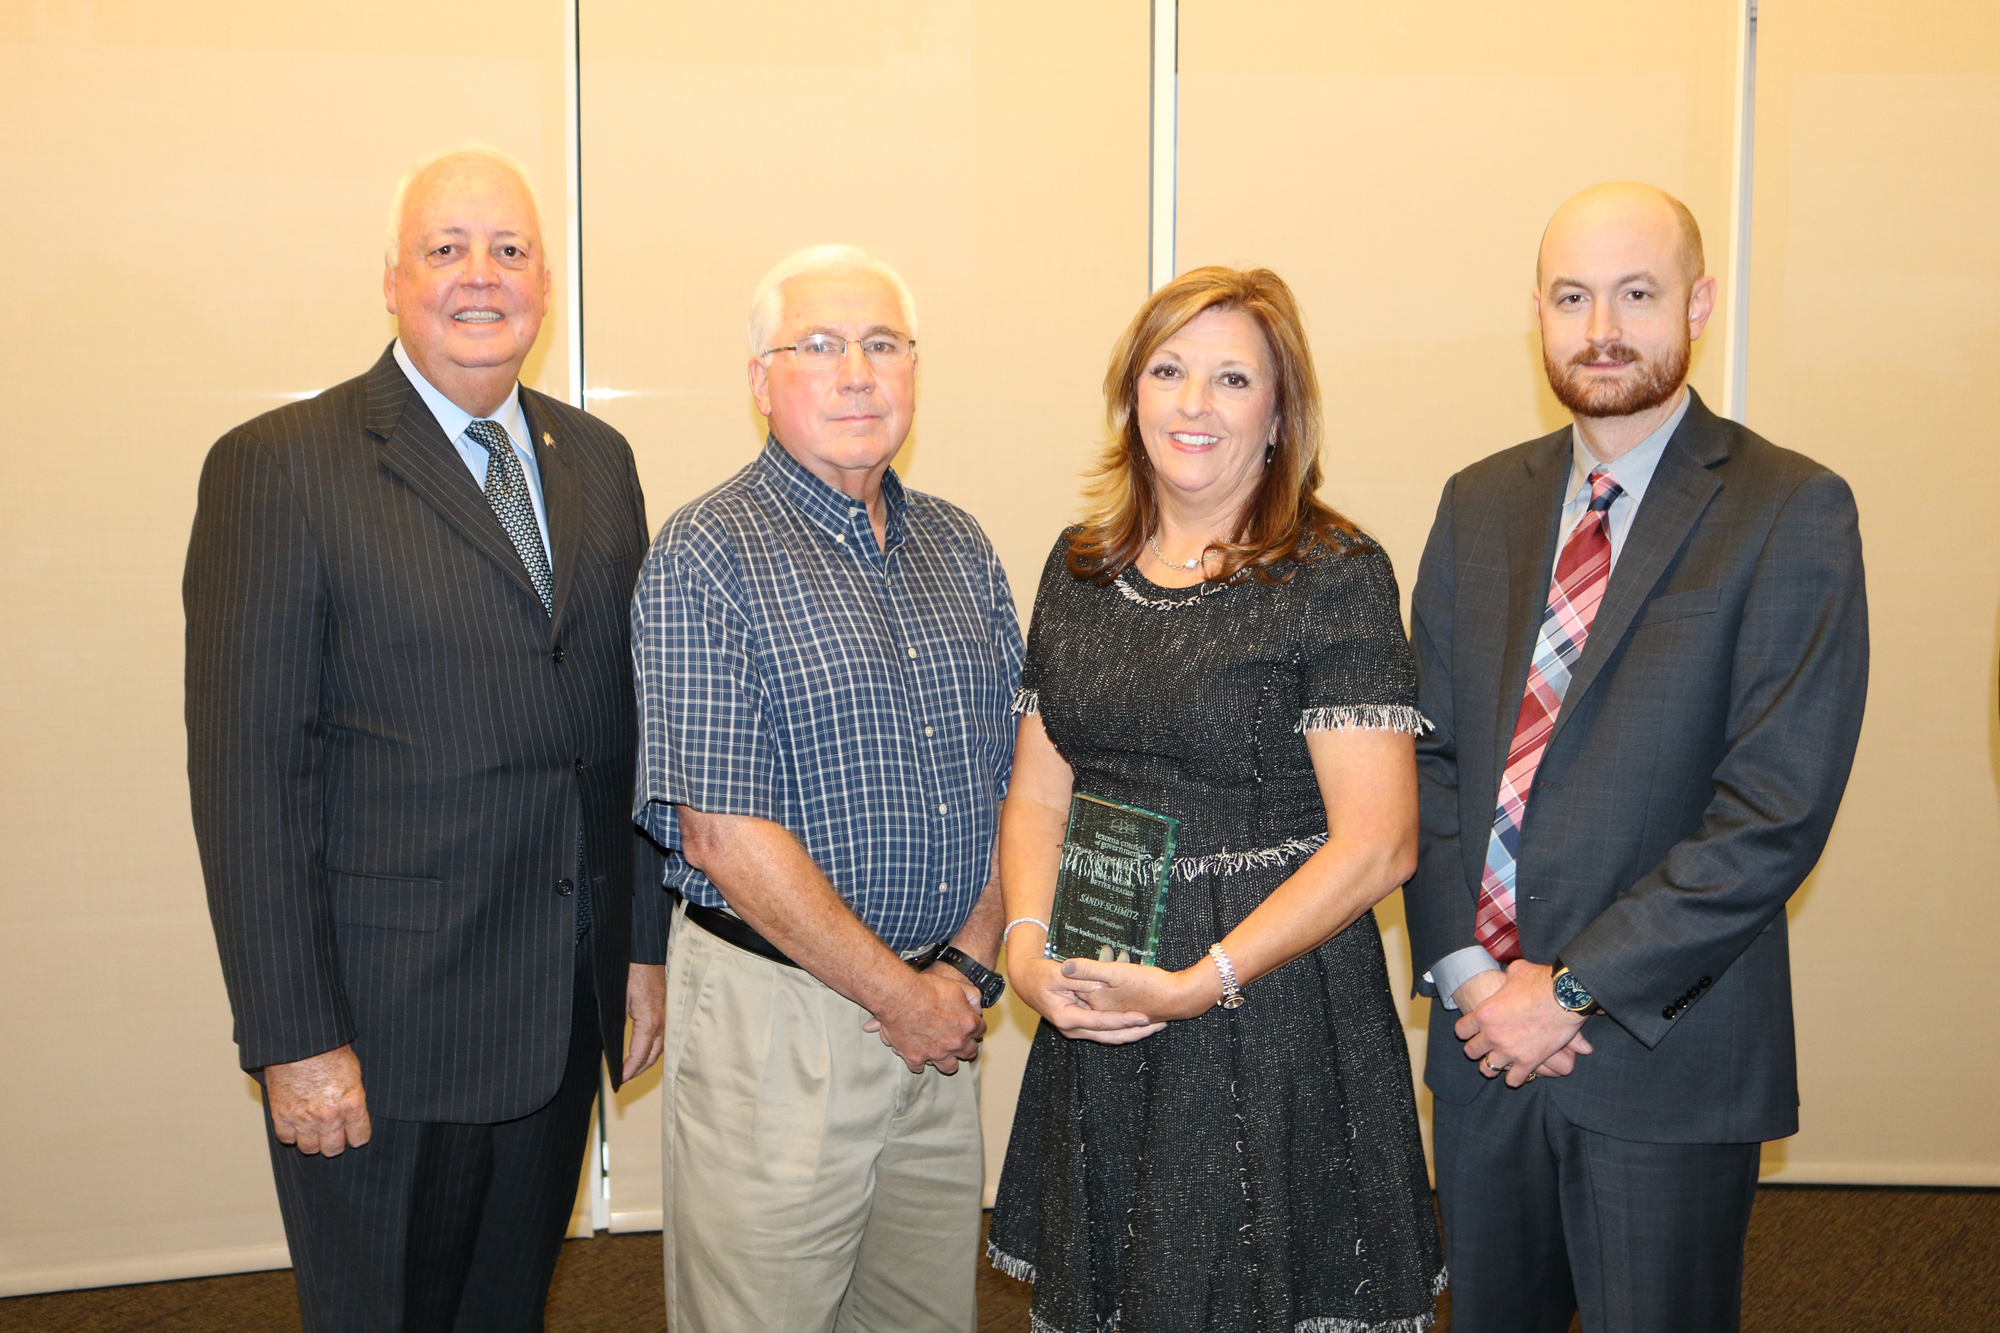 Dan Busch, Cooke County Community Representative; Councilman Ken Keeler, City of Gainesville; Sandy Schmitz, Cooke County Better Leader Award Recipient 2018; Judge Jason Brinkley, Cooke County